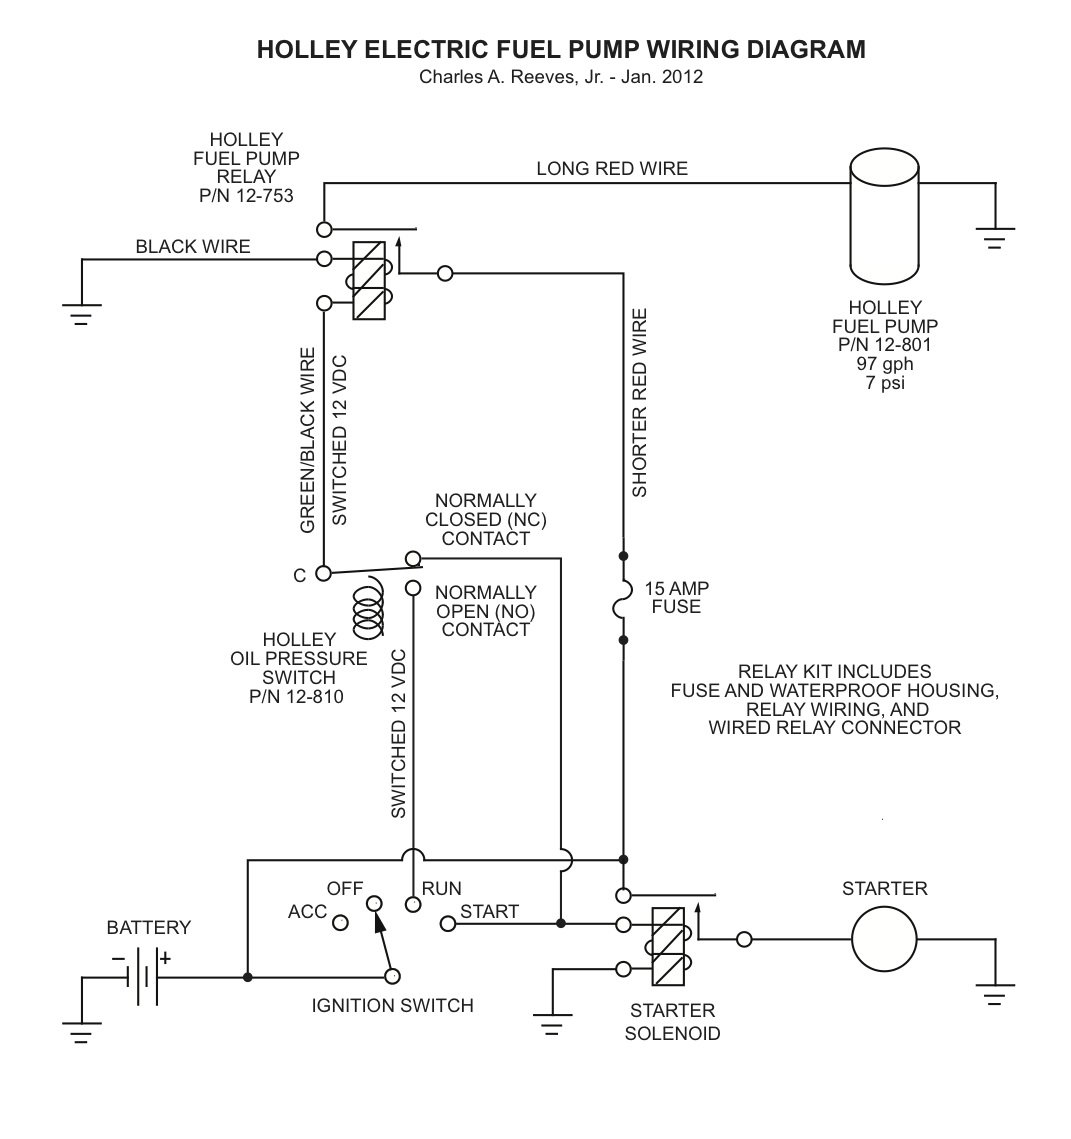 installing a holley electric fuel pump in a 1966 mustang ford click image for larger version elect fuel pump wiring diagram jpg views